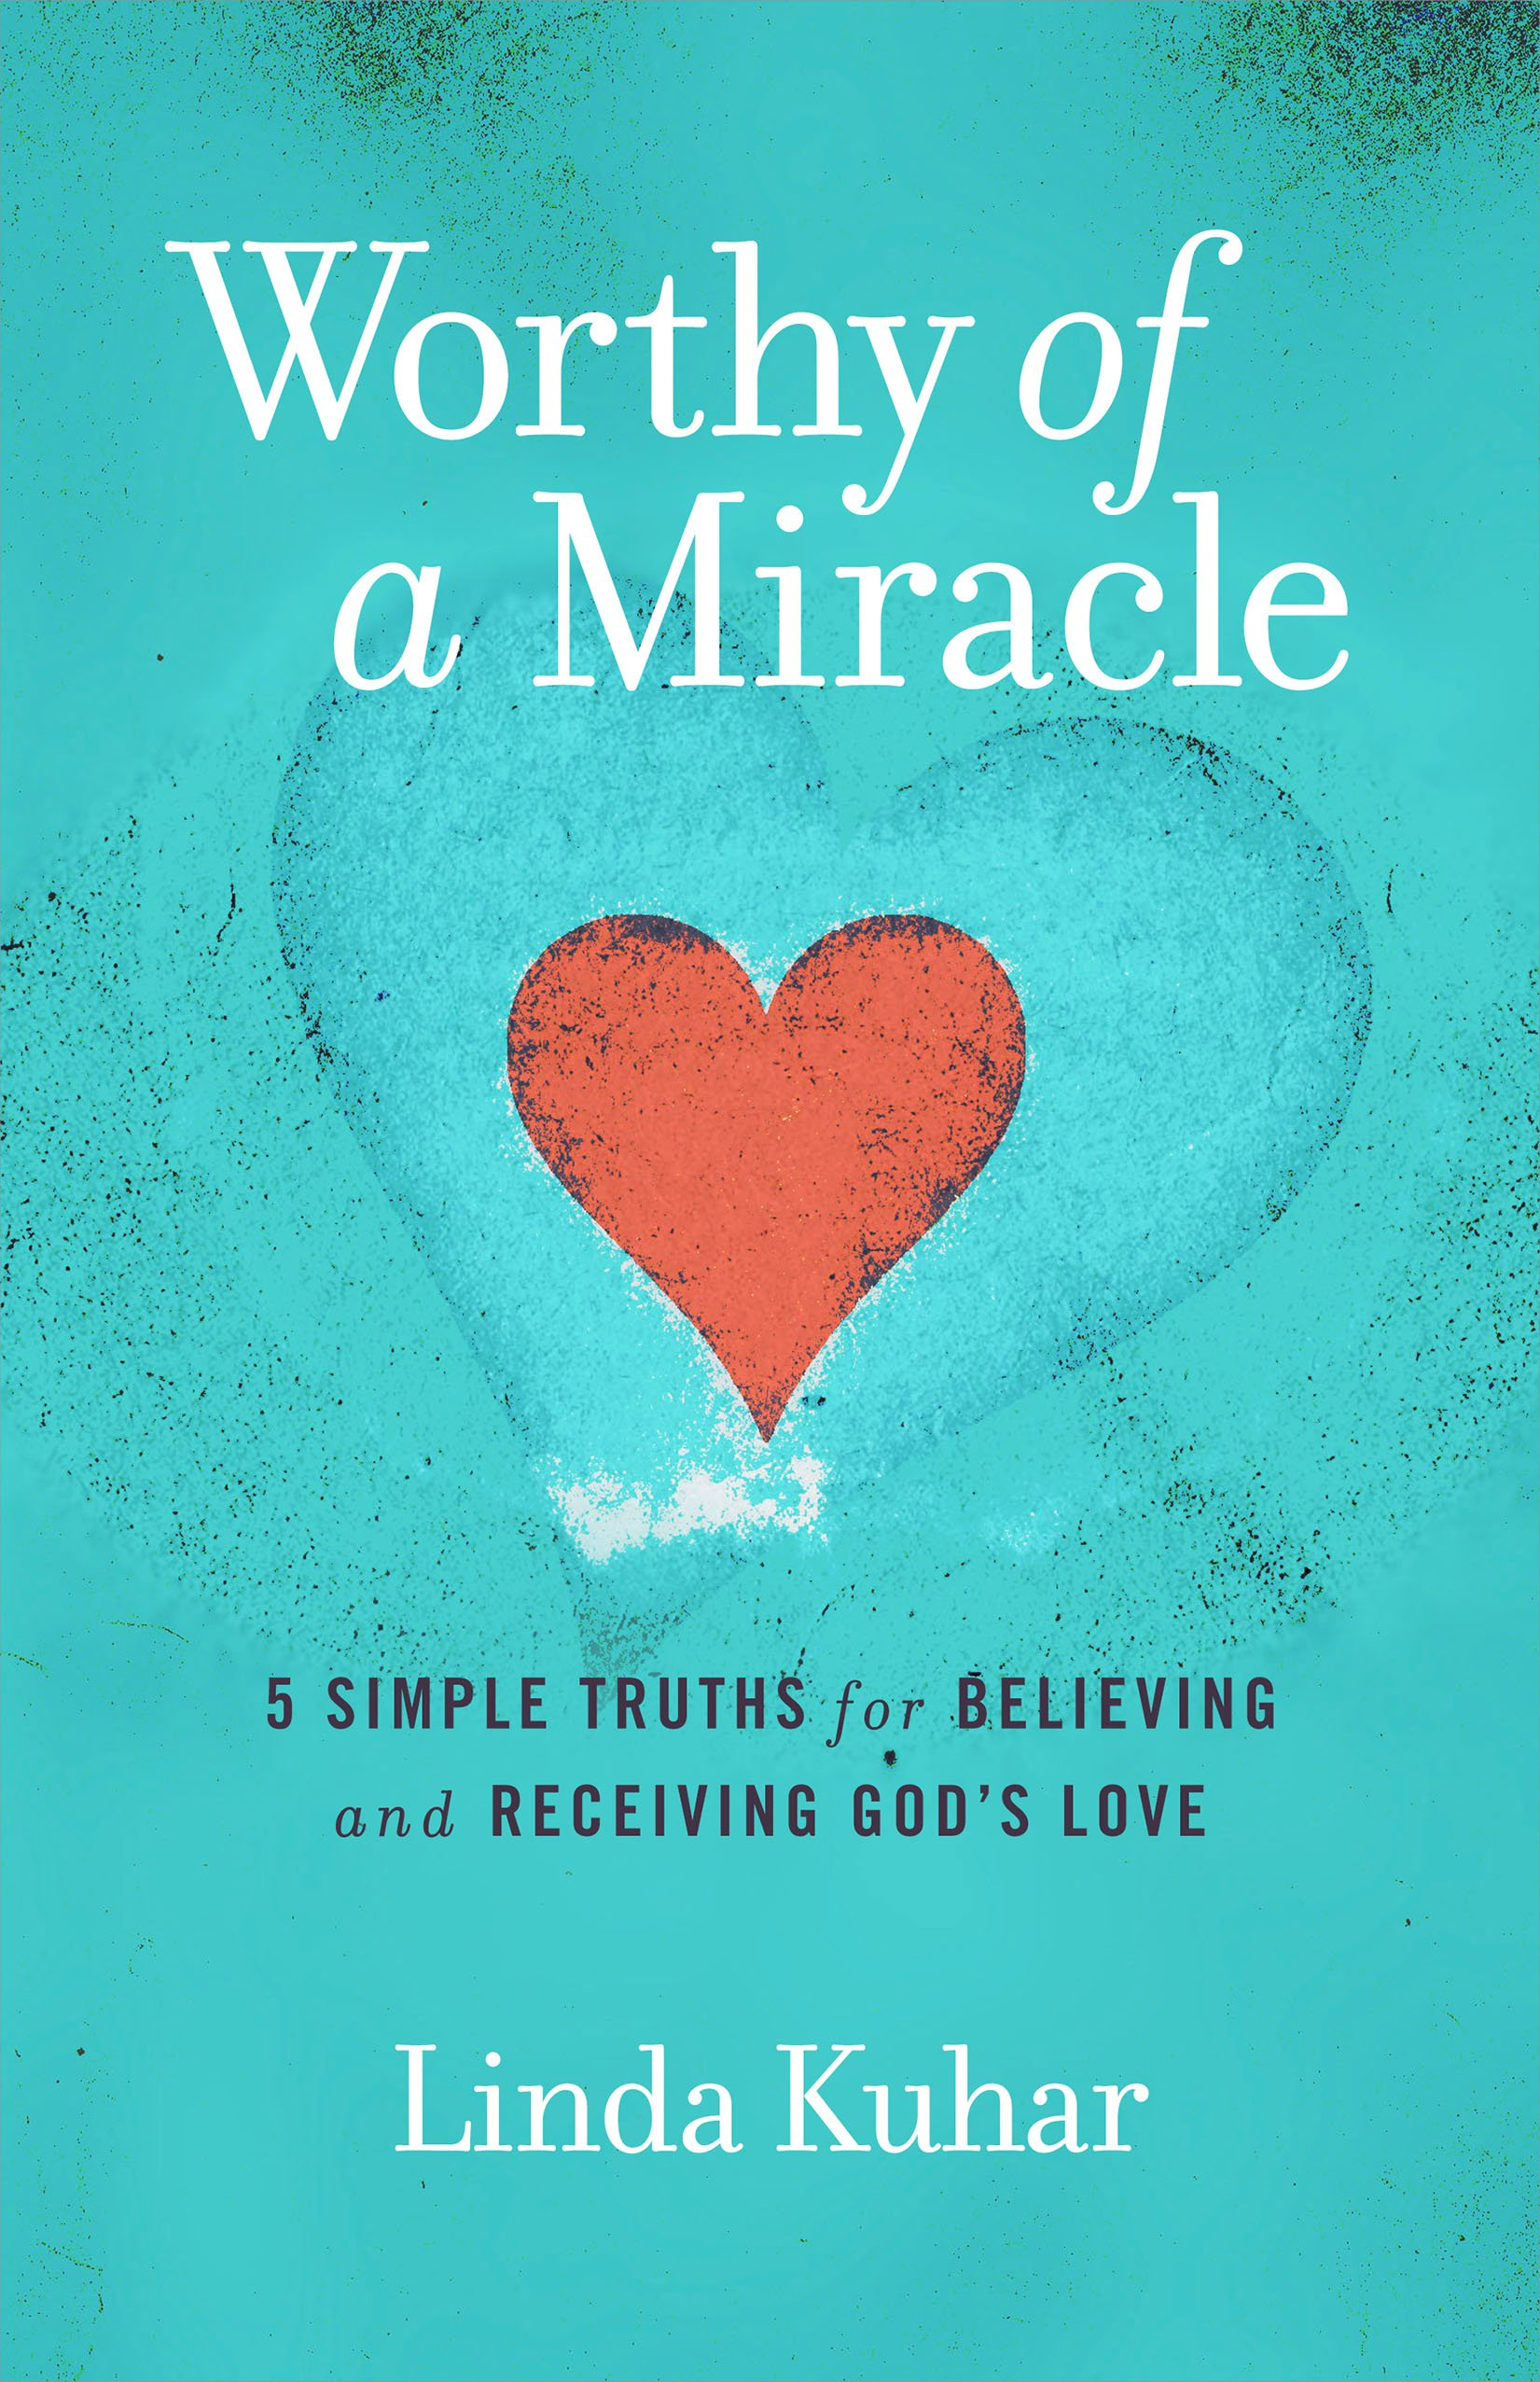 Worthy of a Miracle by Linda Kuhar